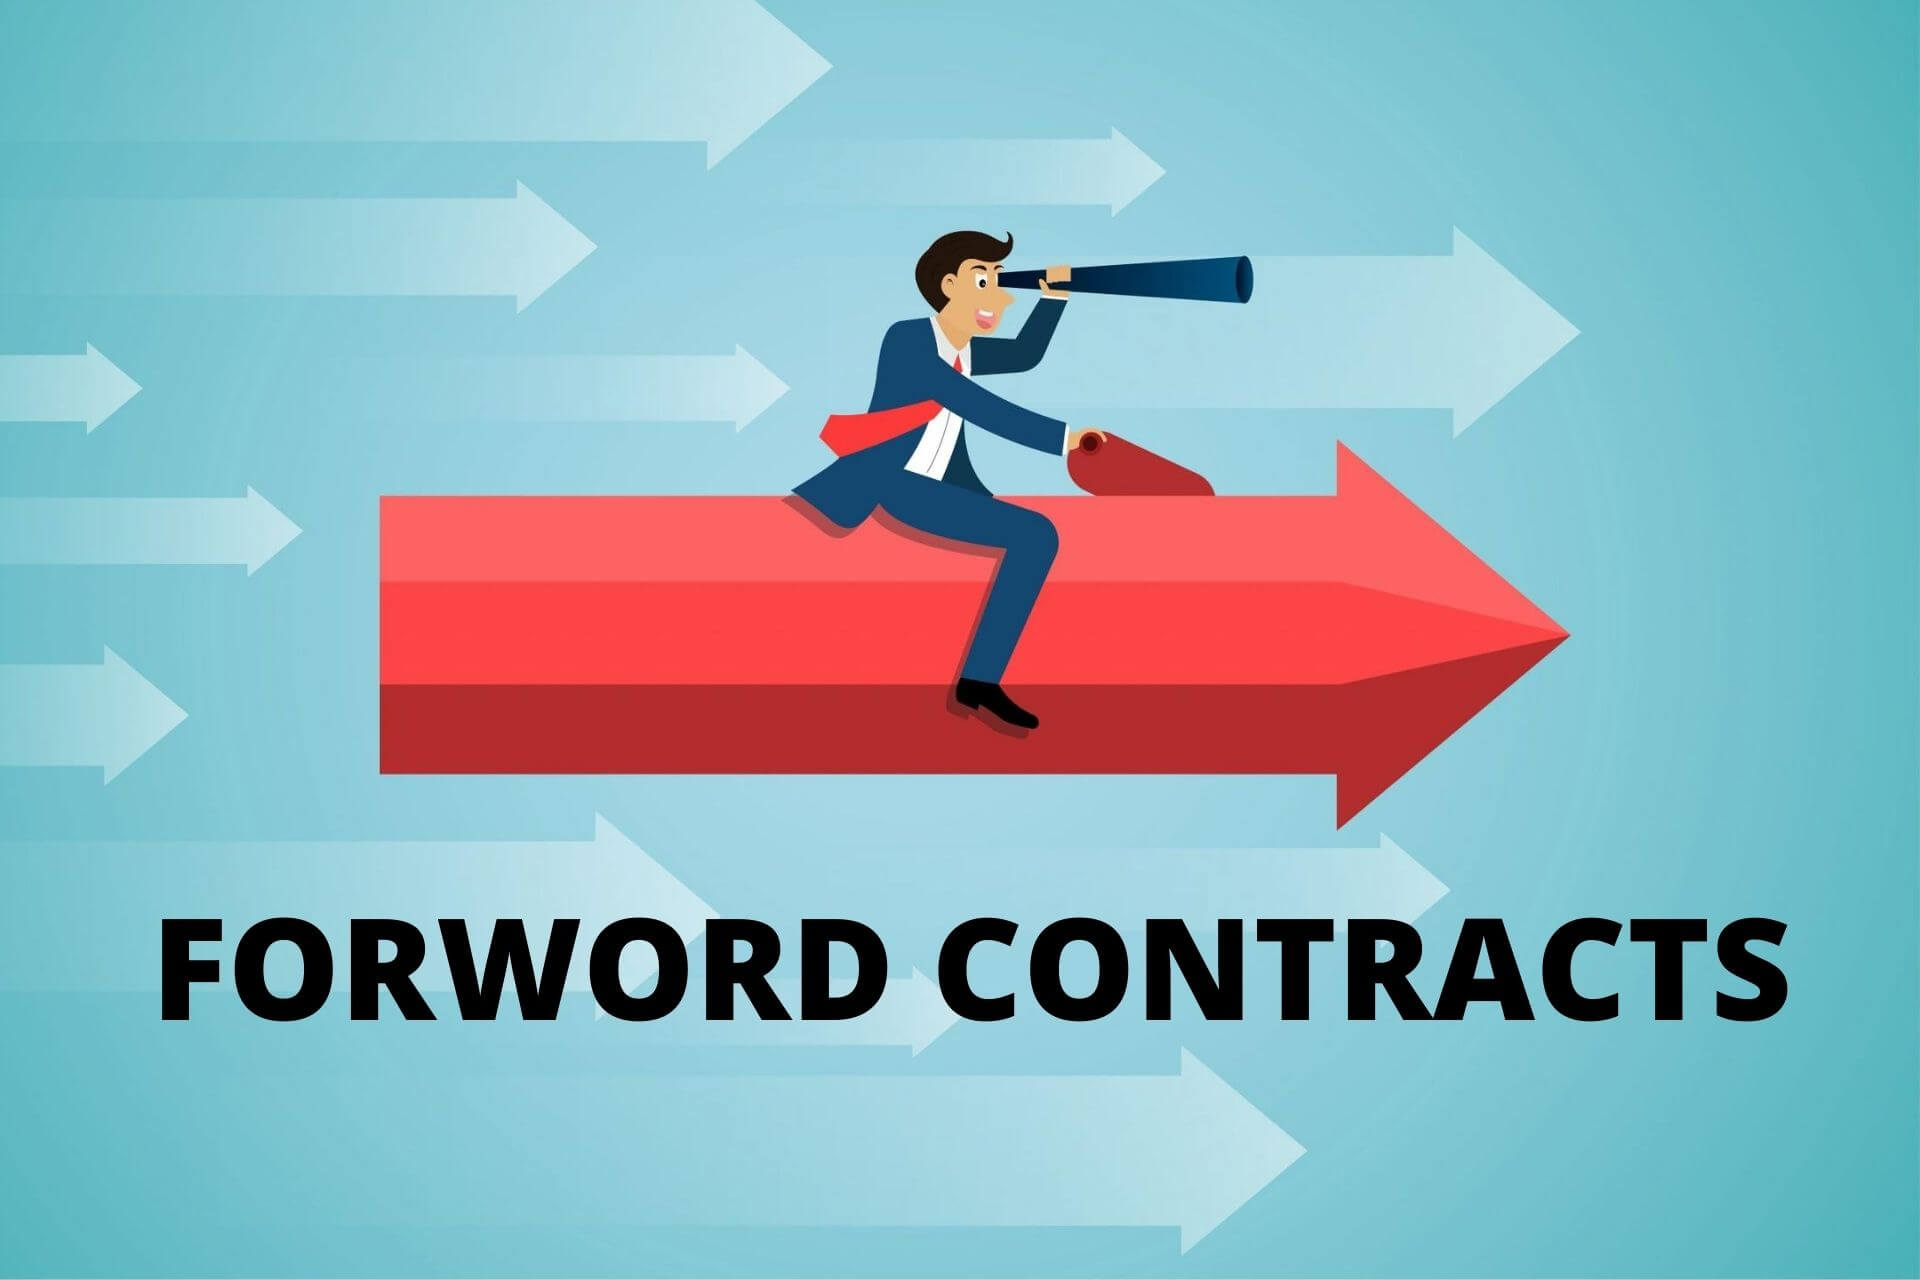 What are Forward Contracts cover